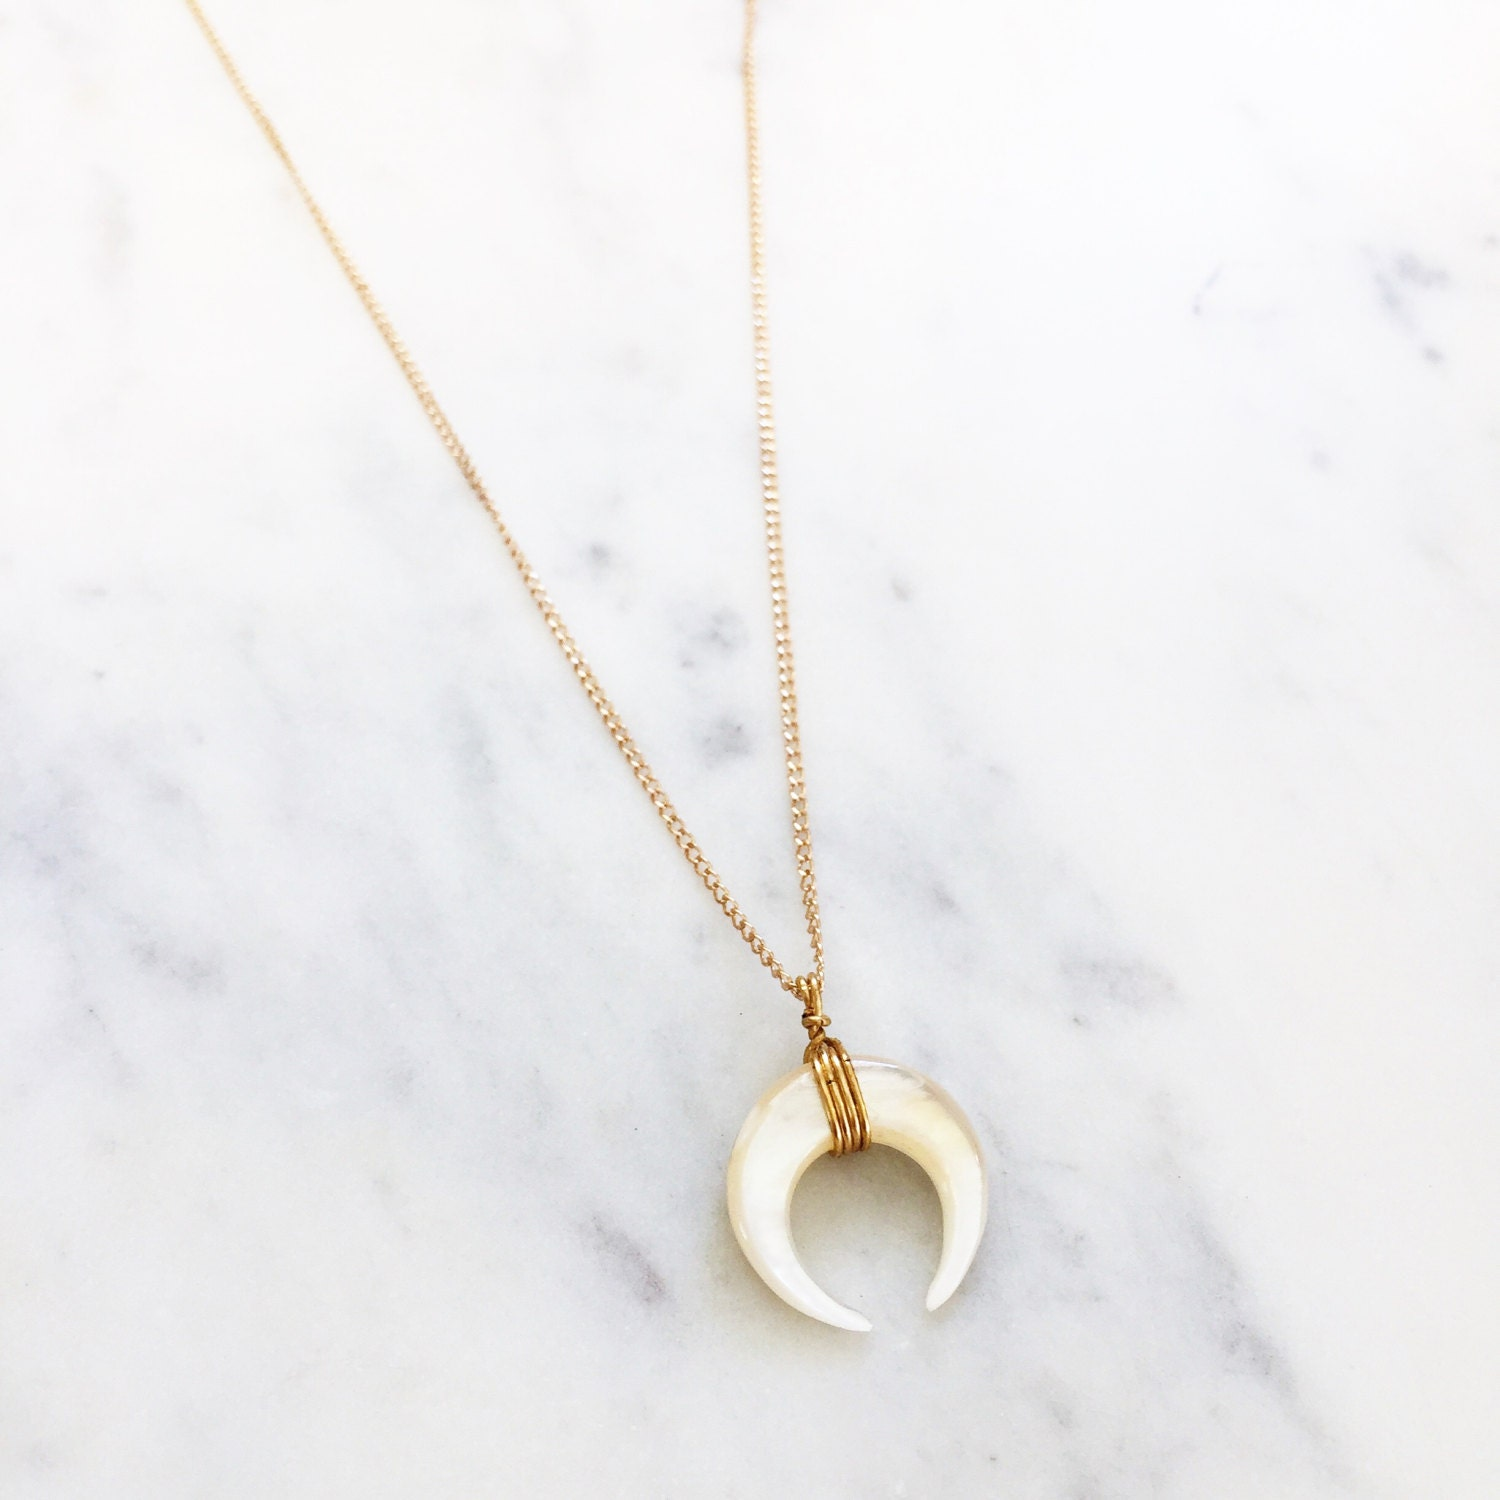 The PEARL Moon baby / Crescent Moon / tusk / half moon / horn / Moon Necklace / Crescent Moon Necklace / Half Moon Necklace /